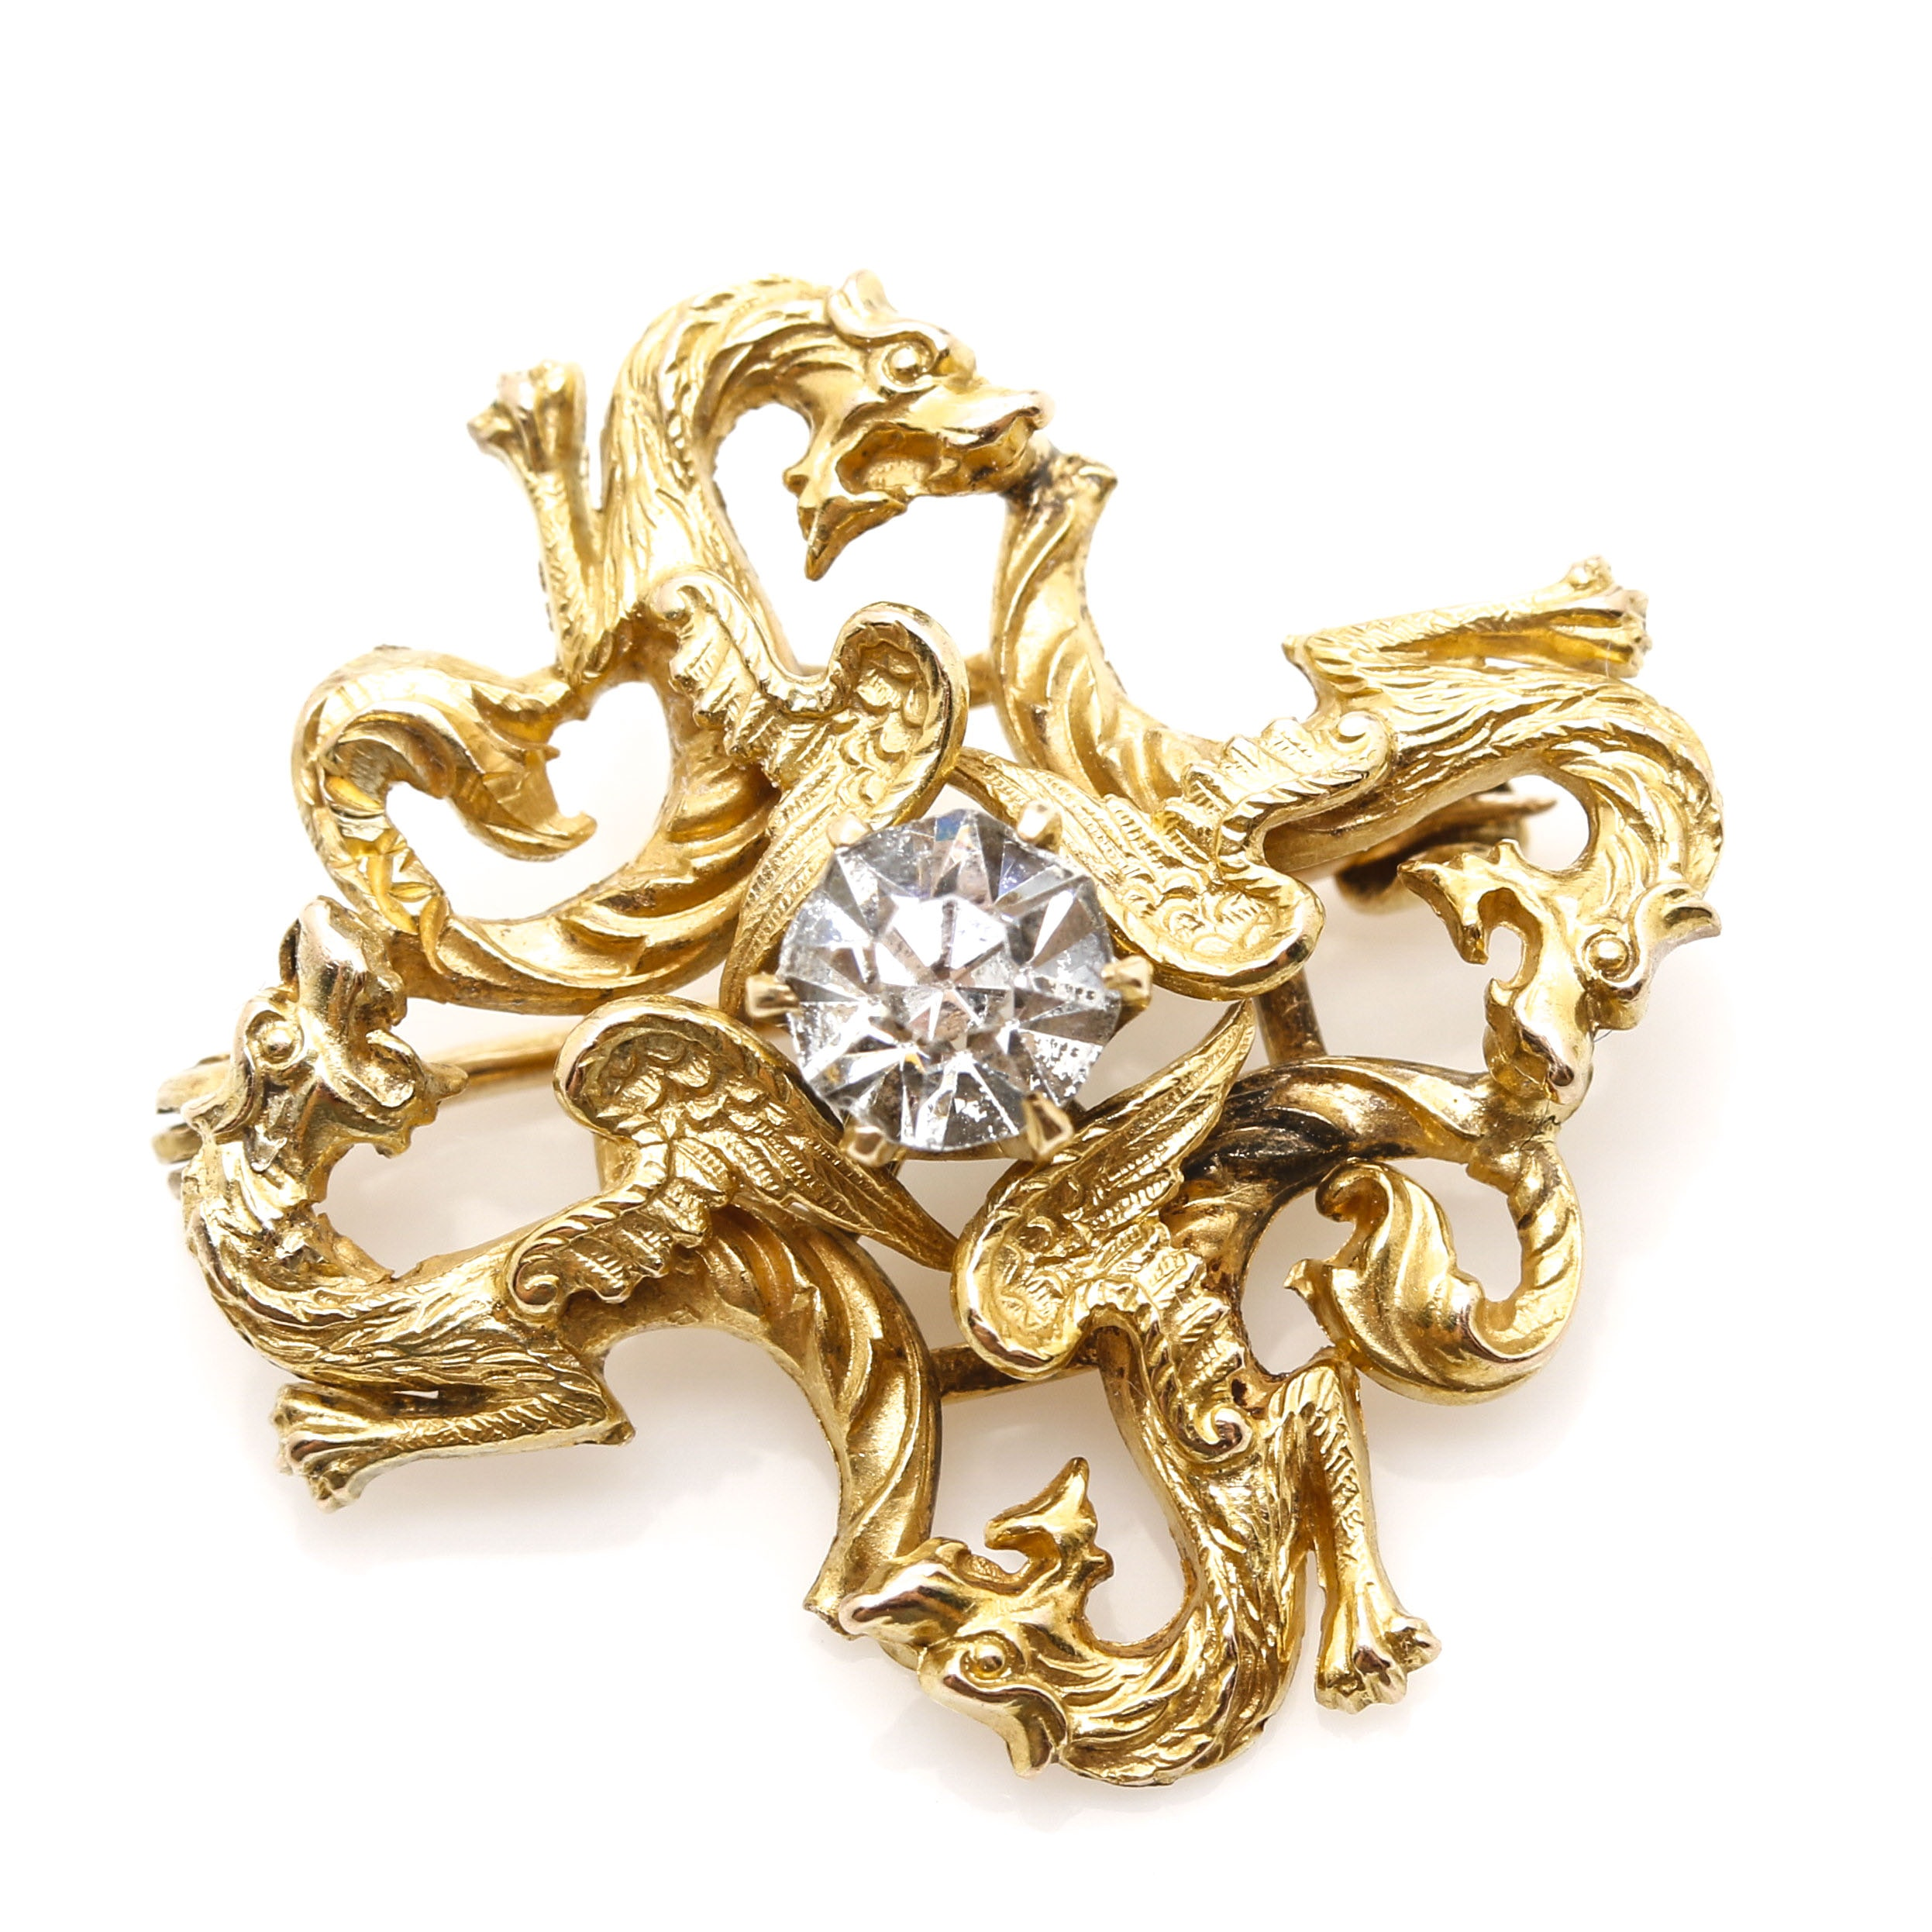 Fin de Siecle 8K and 10K Yellow Gold and Glass Dragon Brooch